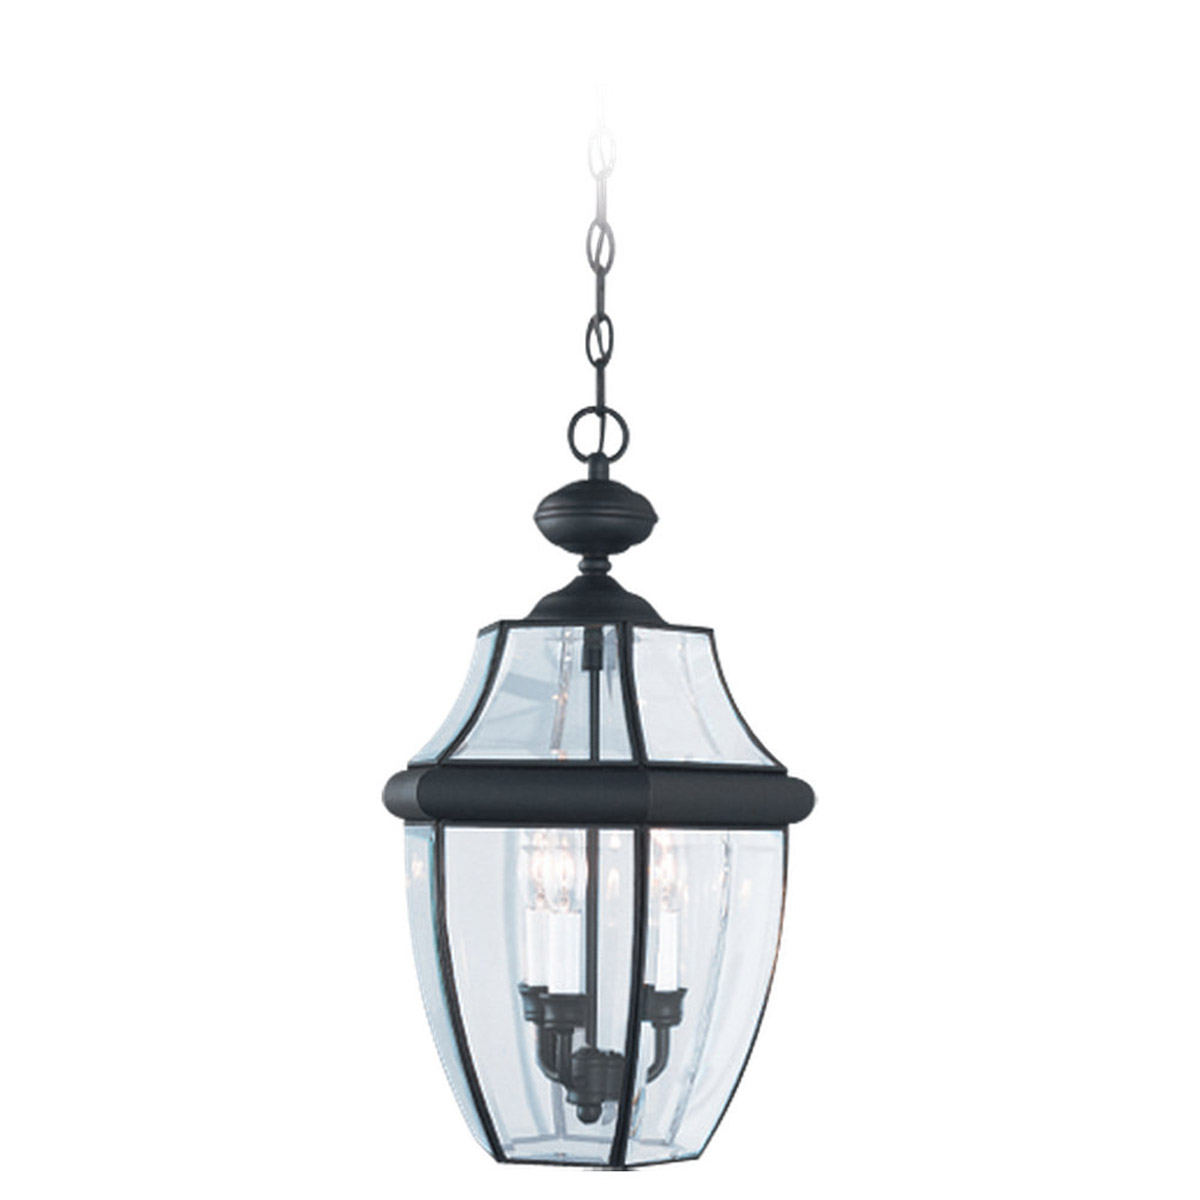 Sea Gull Lighting Lancaster 3 Light Outdoor Pendant in Black 6039-12